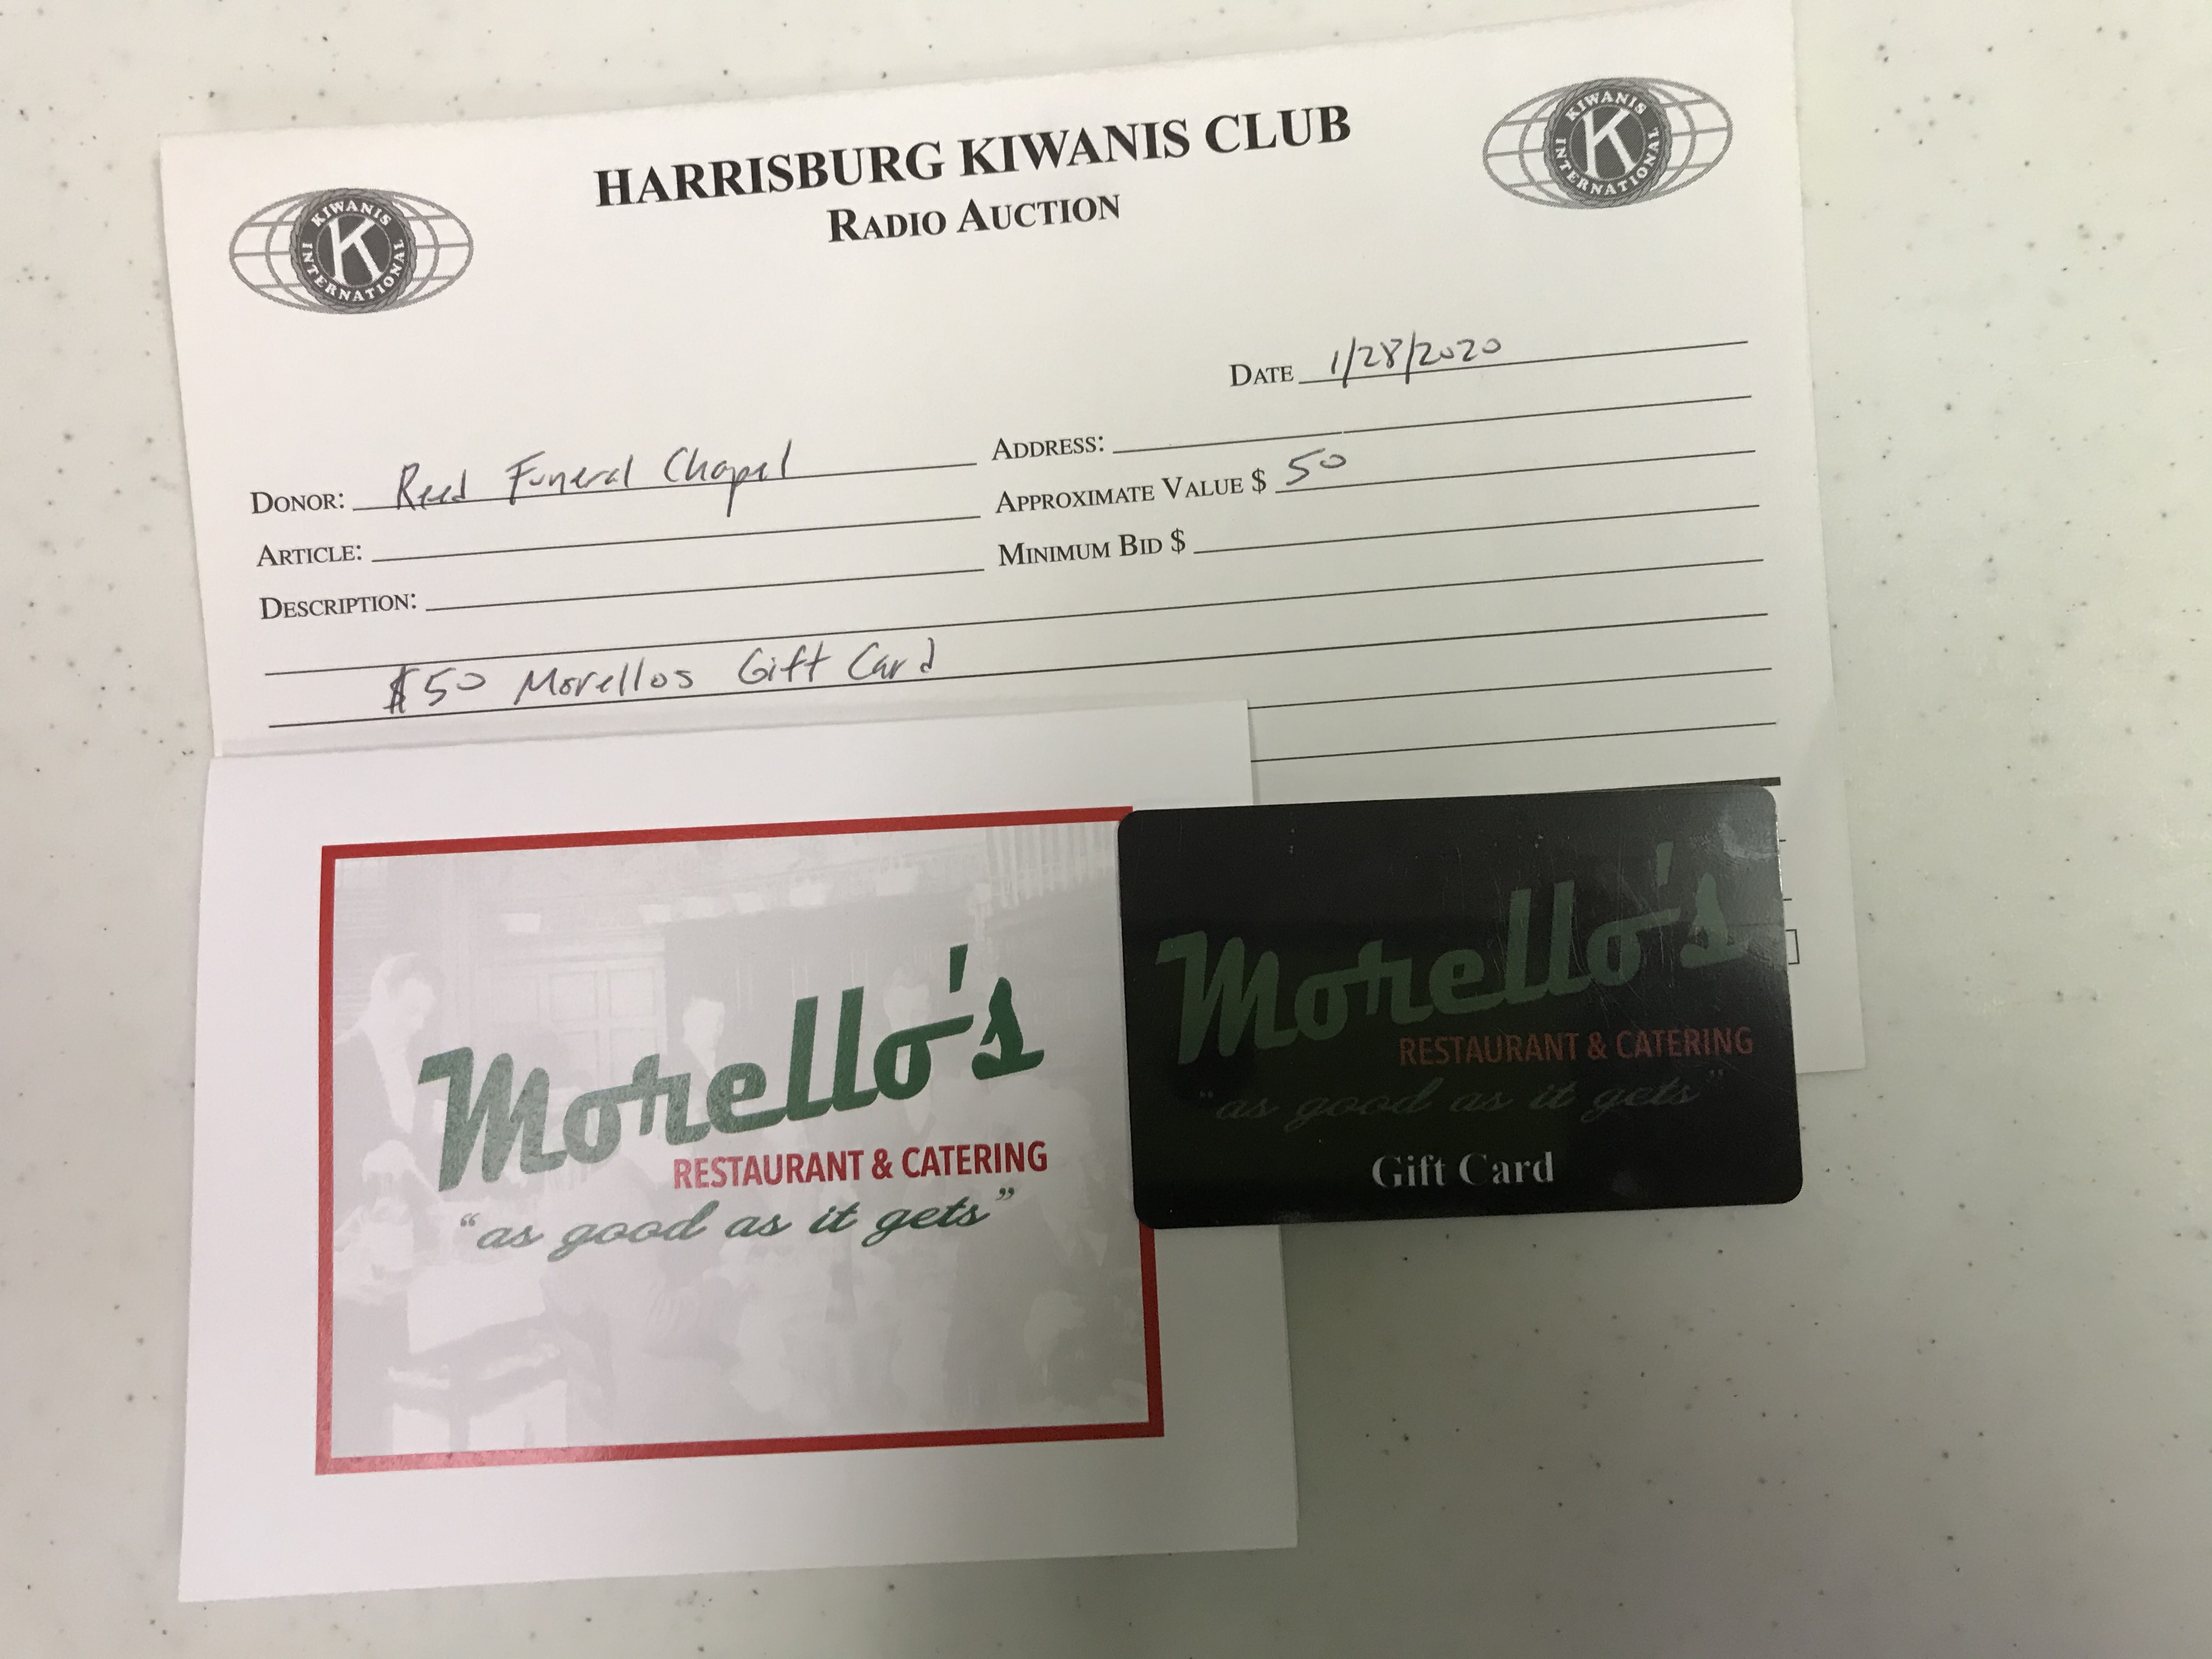 Item 215 - Reed Funeral Chapel $50 Morellos Gift Card